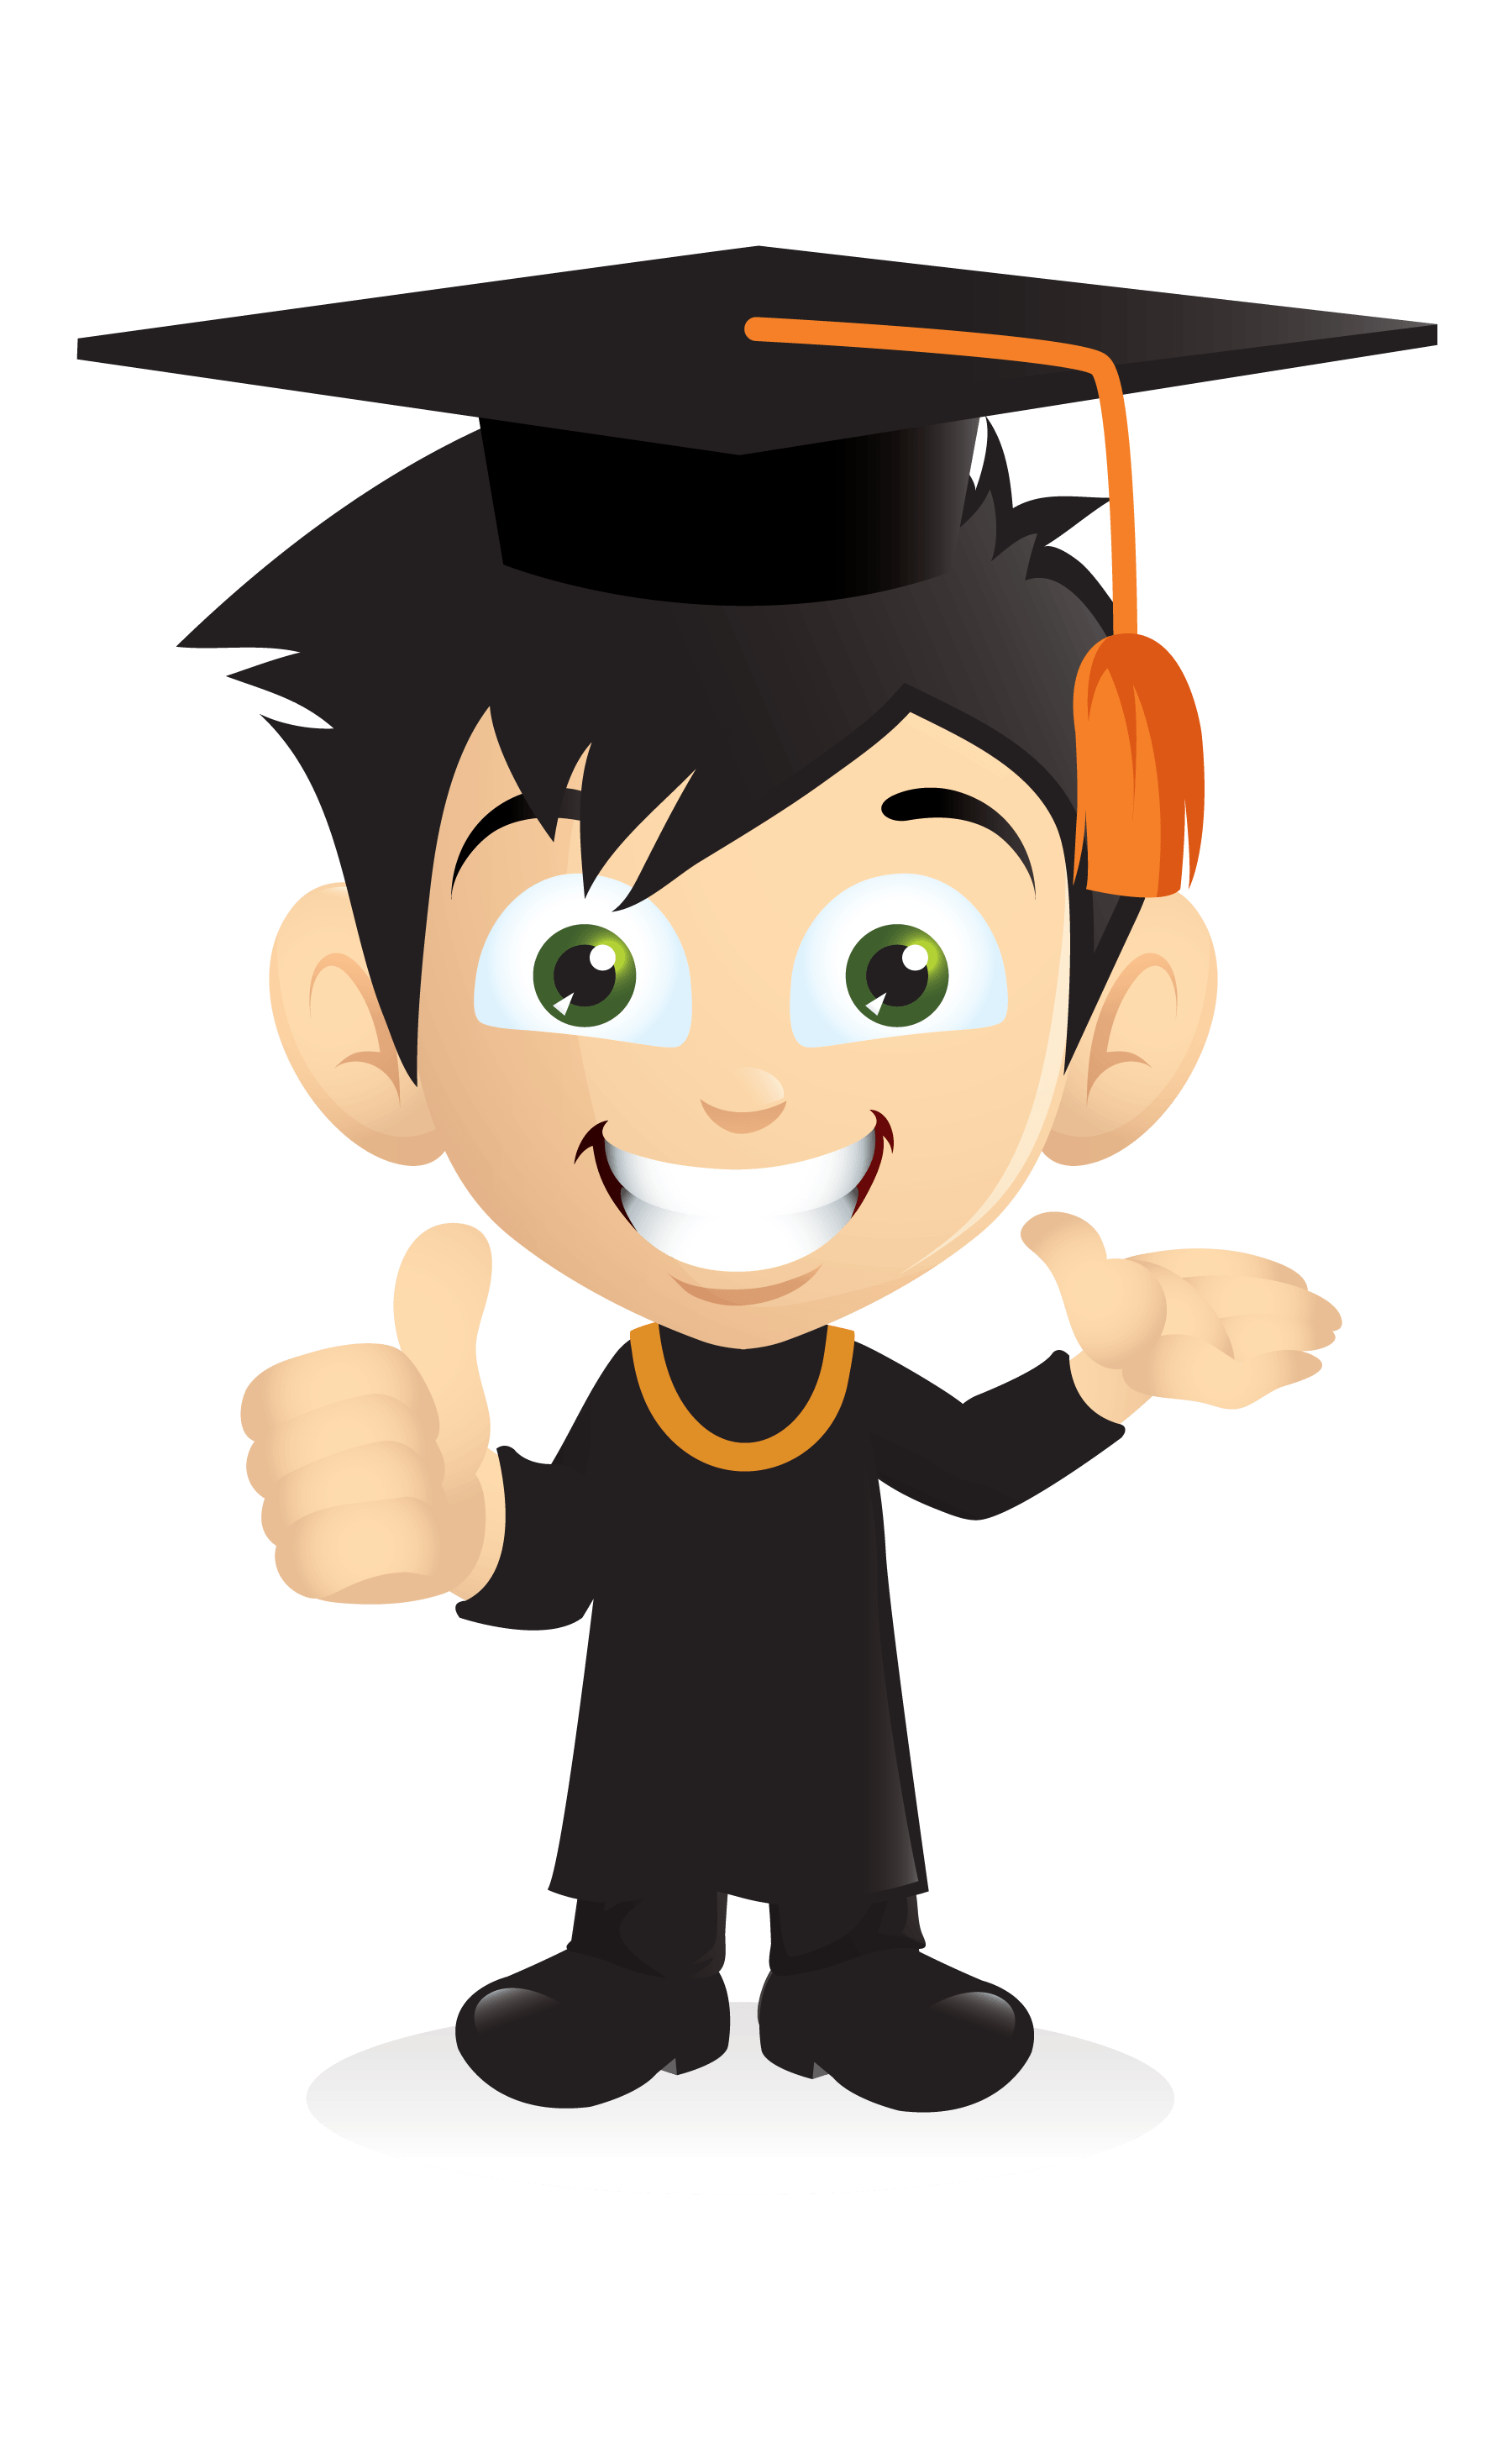 Cartoon Smiling Graduation Boy [PNG] png